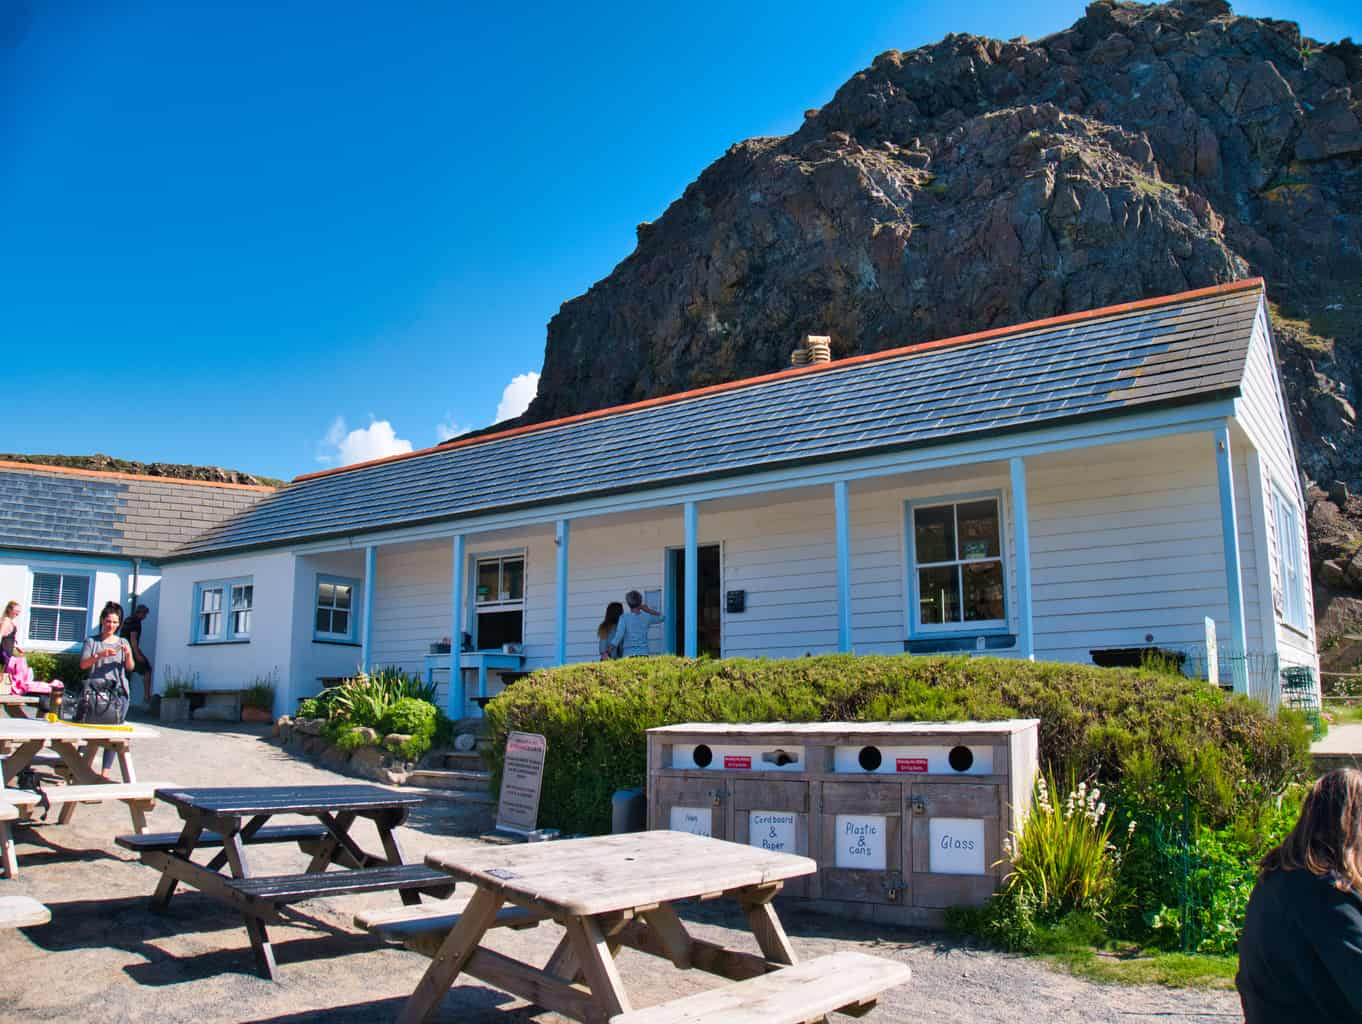 The cafe at Kynance Cove with picnic tables outside and a blue sky